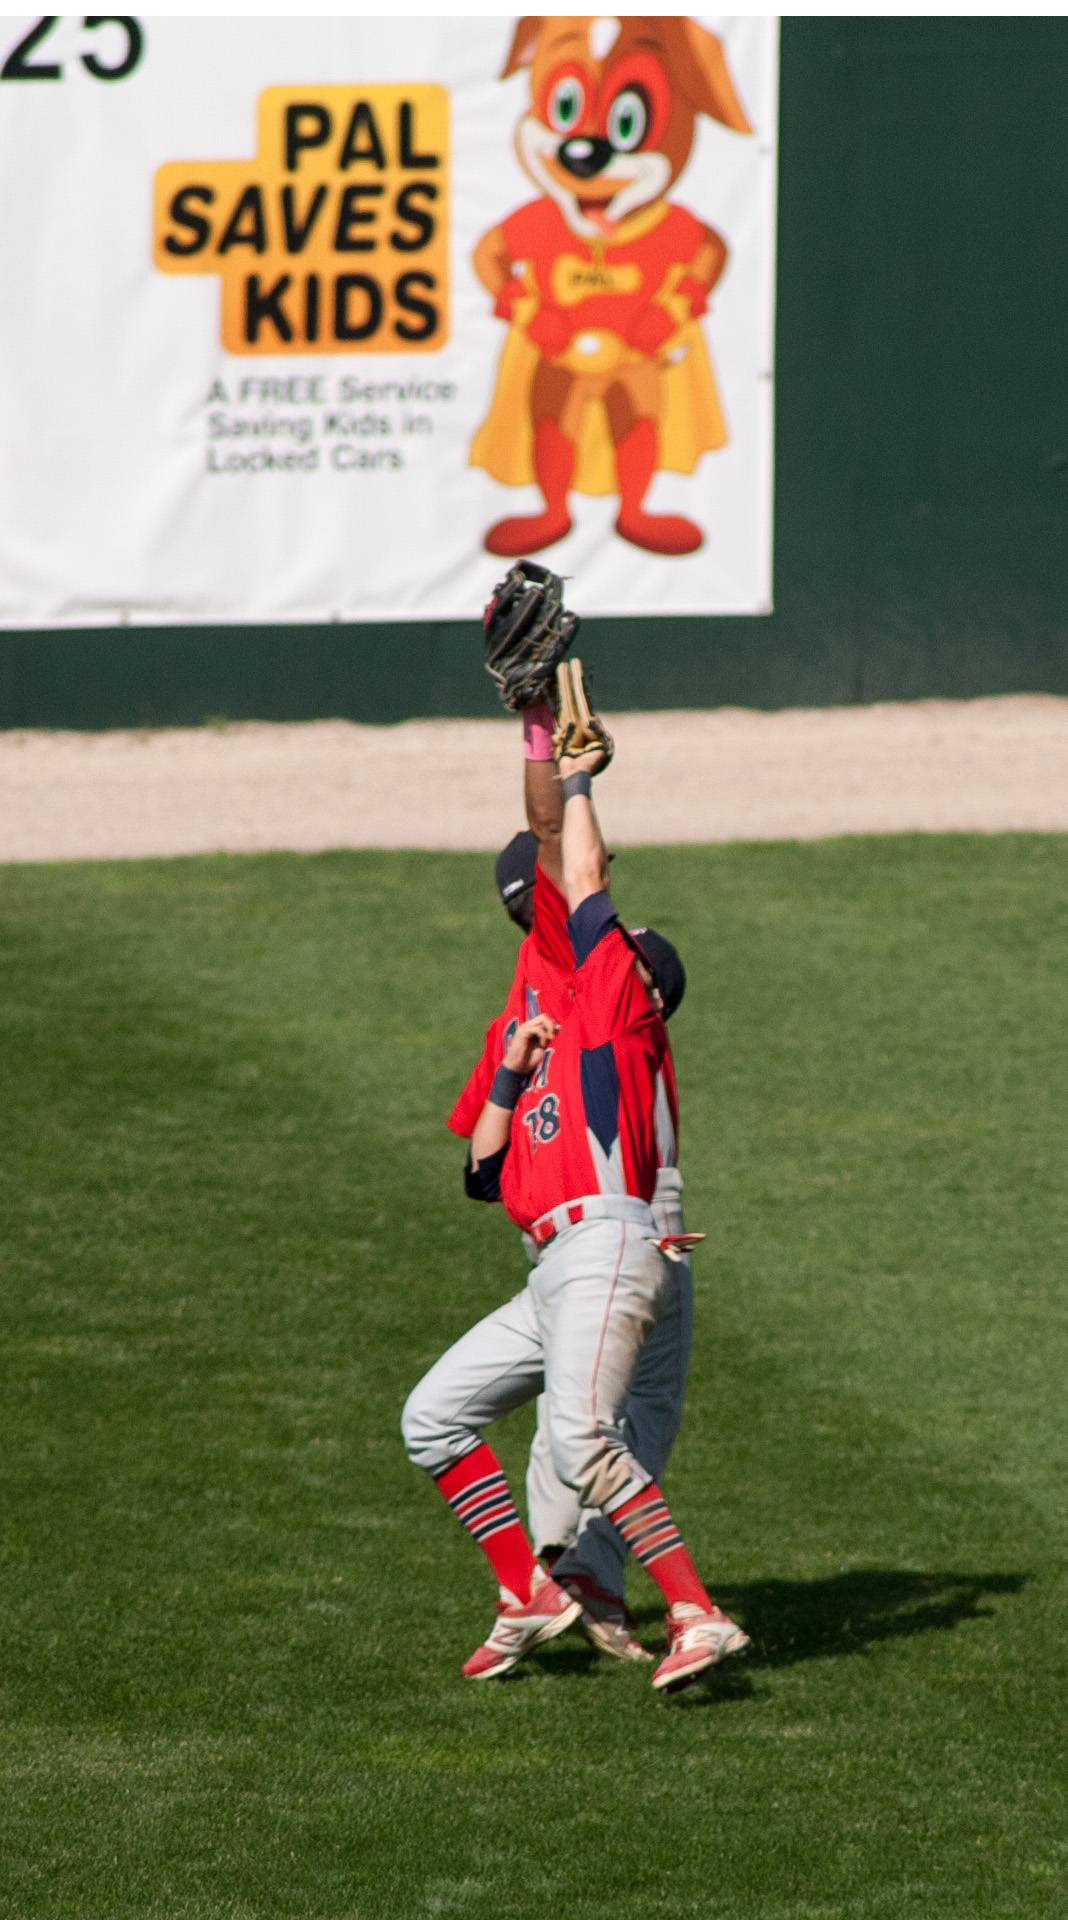 South Elgin outfielders Antonio Danesi (28) and Nick Menken (18) nearly collide in the fourth inning on a flyball during the Class 4A third-place game at Silver Cross Field in Joliet.